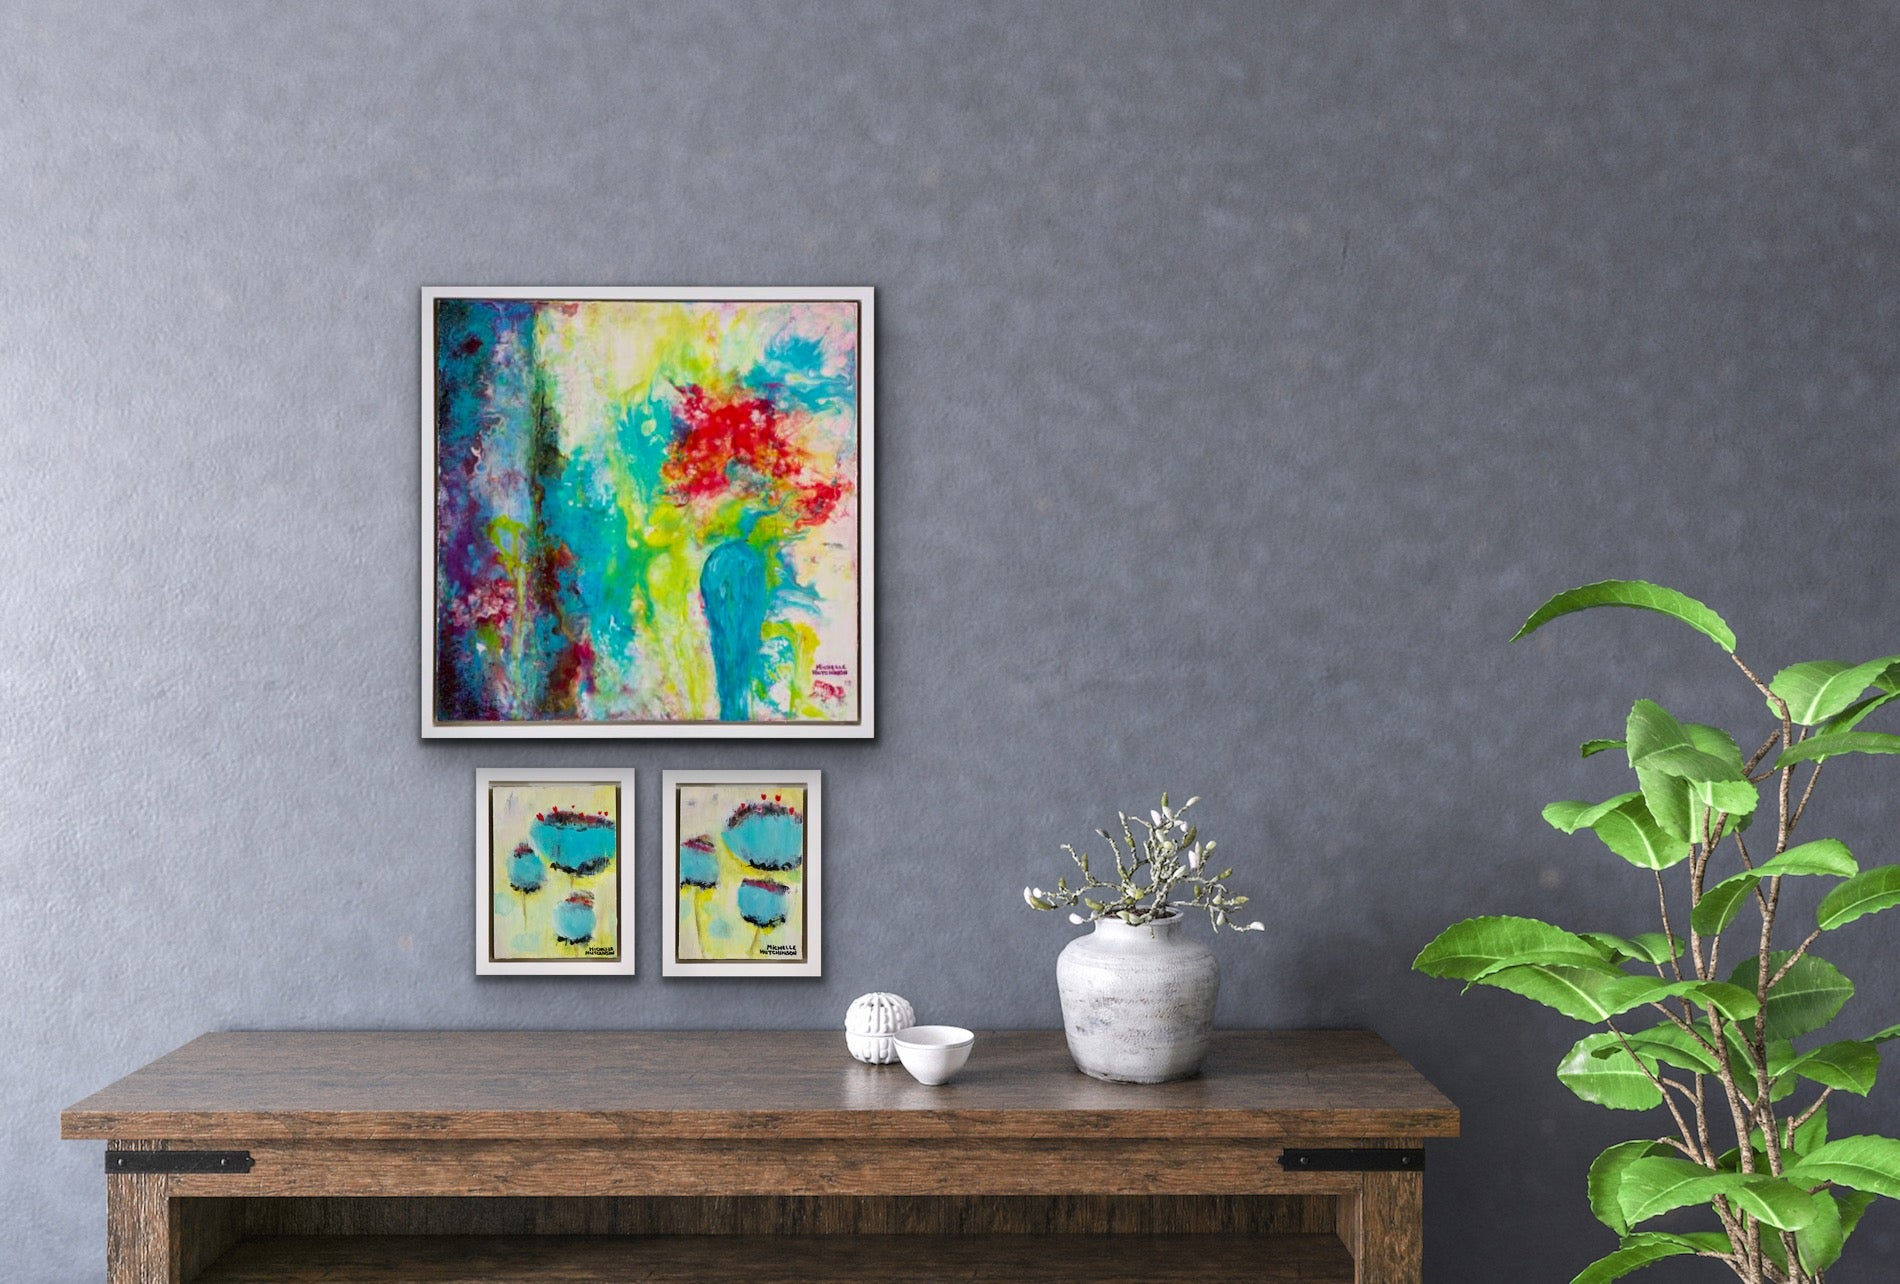 Offbeat and playful, this joyful original painting uses a technique called acrylic pouring. The red flowers sit within a teal vase beside blue drapes, inviting the viewer to gaze into the heart of love. It has a glossy finish. Displayed on a grey wall with two mini paintings above a console table.